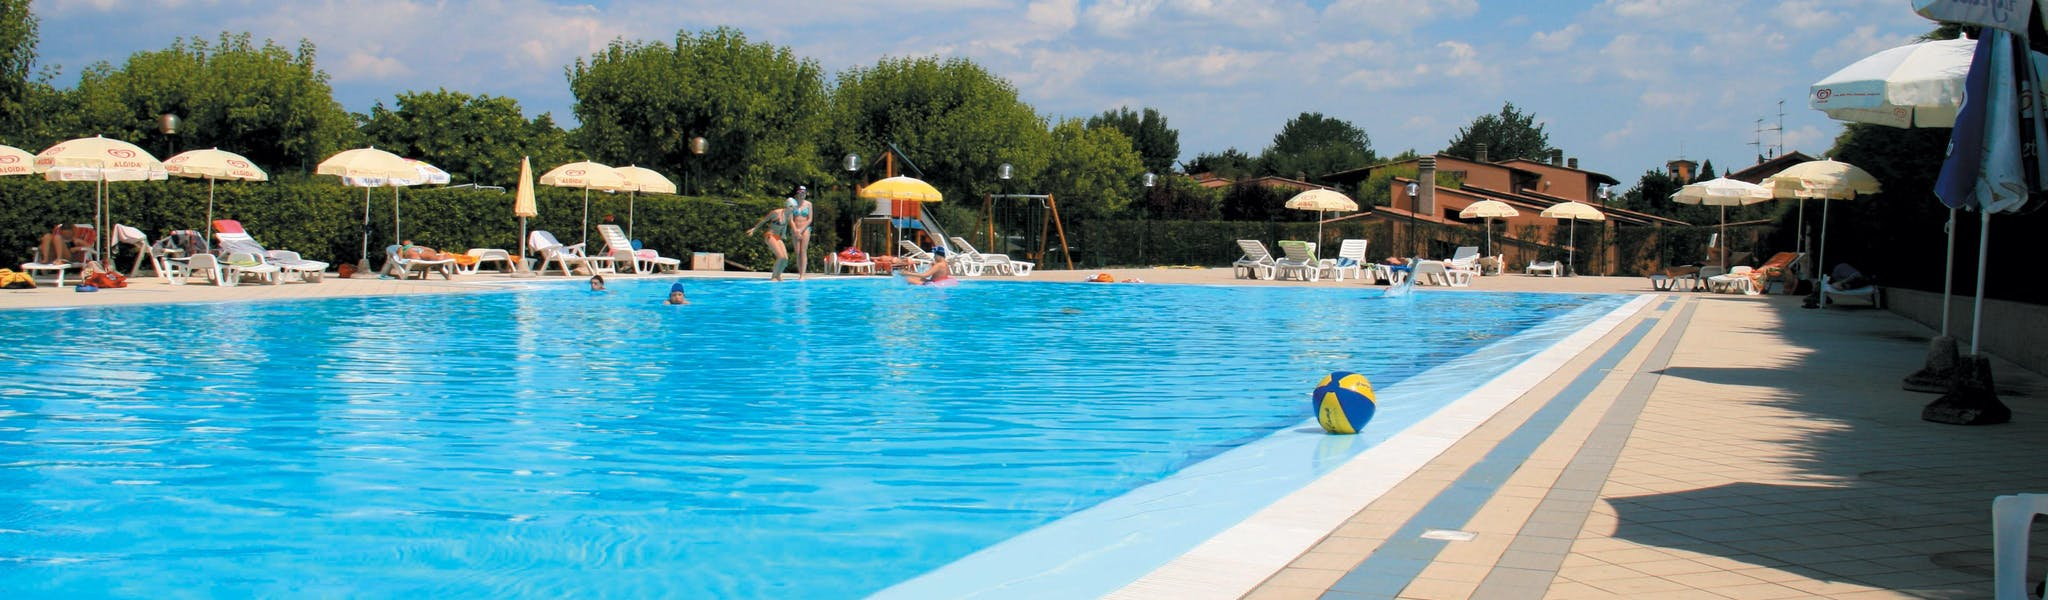 Zwembad op camping Tiglio